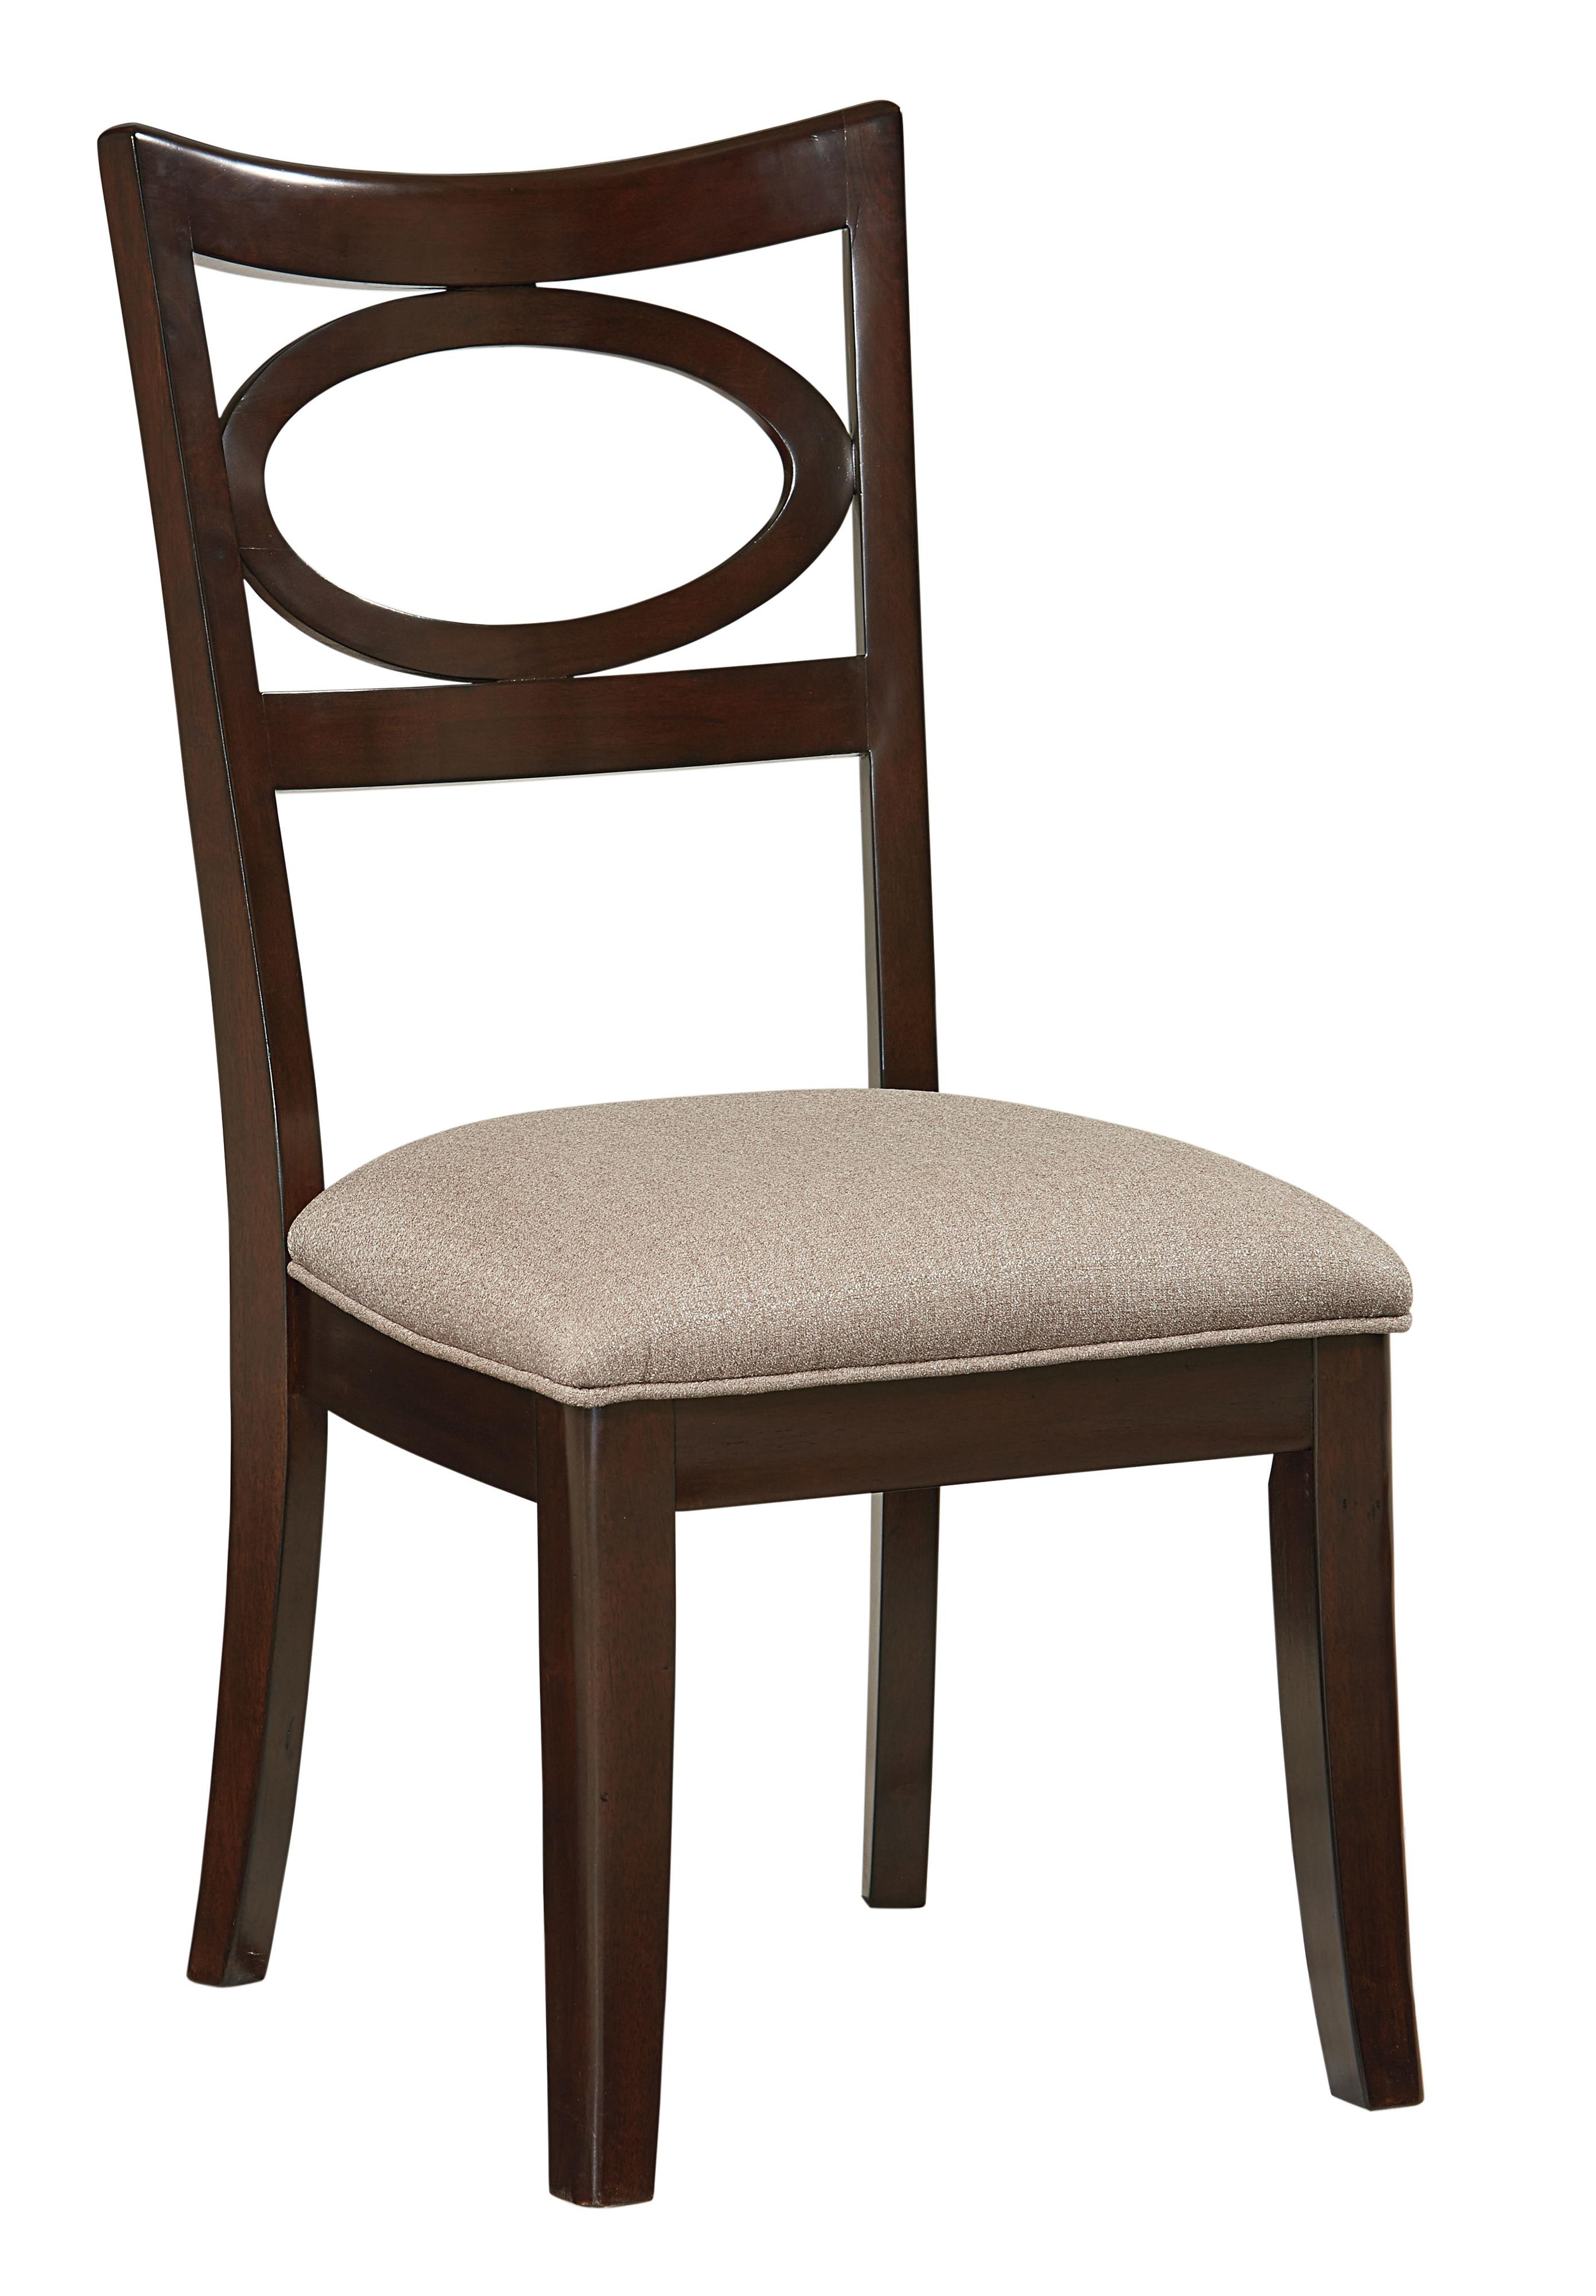 Standard Furniture Serenity Dining Side Chair - Item Number: 17144